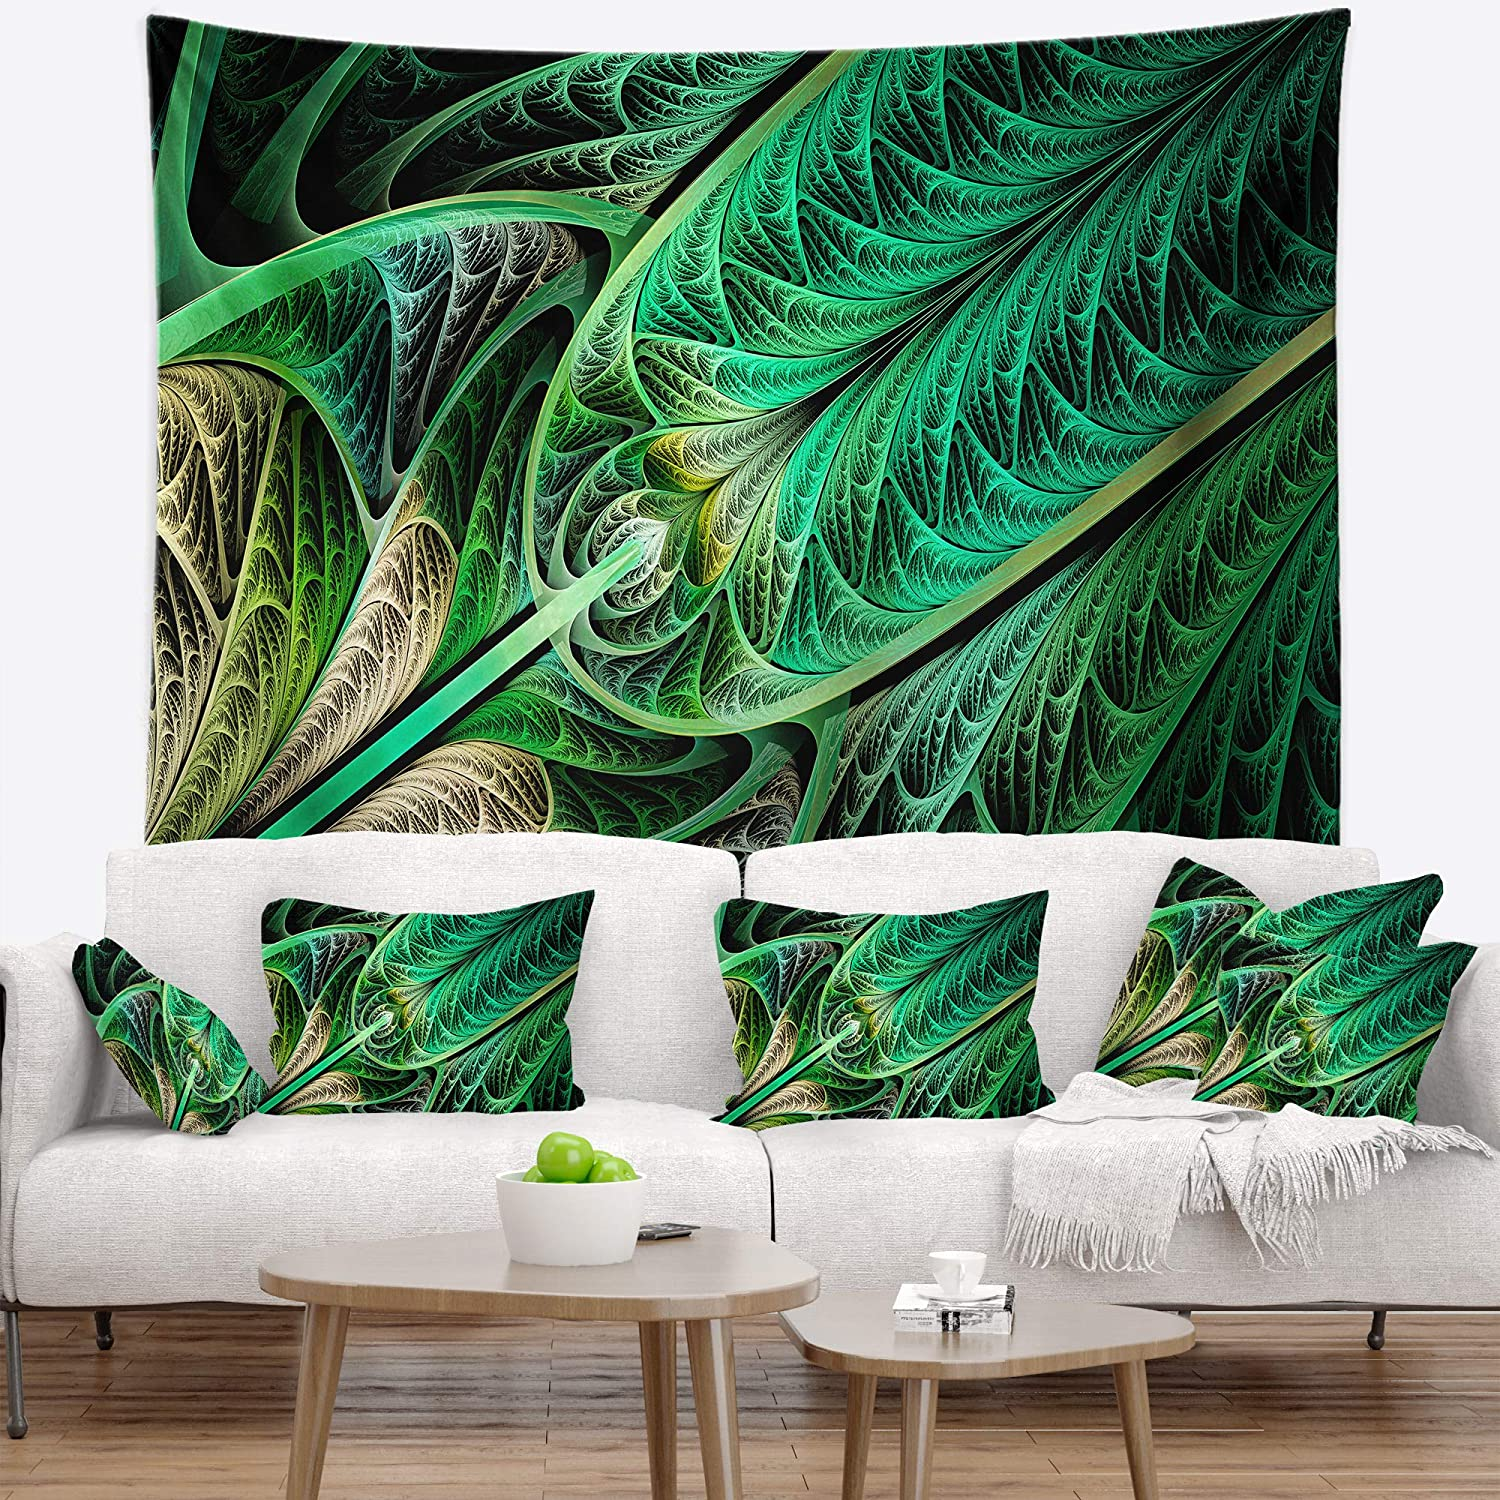 39 In Designart Tap15850 39 32 Green On Black Fractal Stained Glass Abstract Blanket Décor Art For Home And Office Wall Tapestry Medium X 32 In Created On Lightweight Polyester Fabric